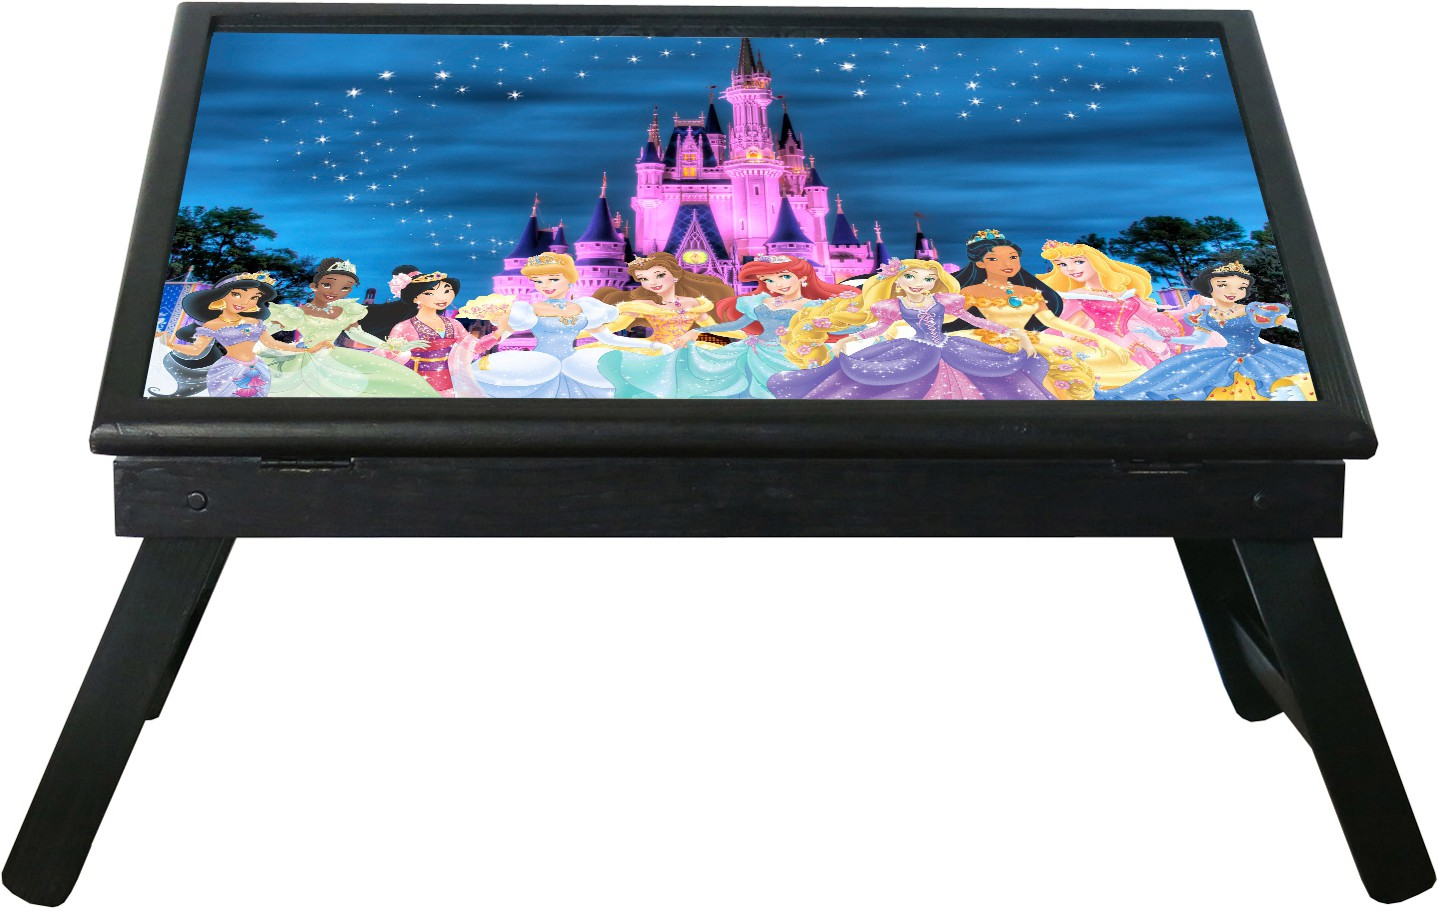 View 10 am Disney Princess table Engineered Wood Study Table(Free Standing, Finish Color - Black) Furniture (10 am)